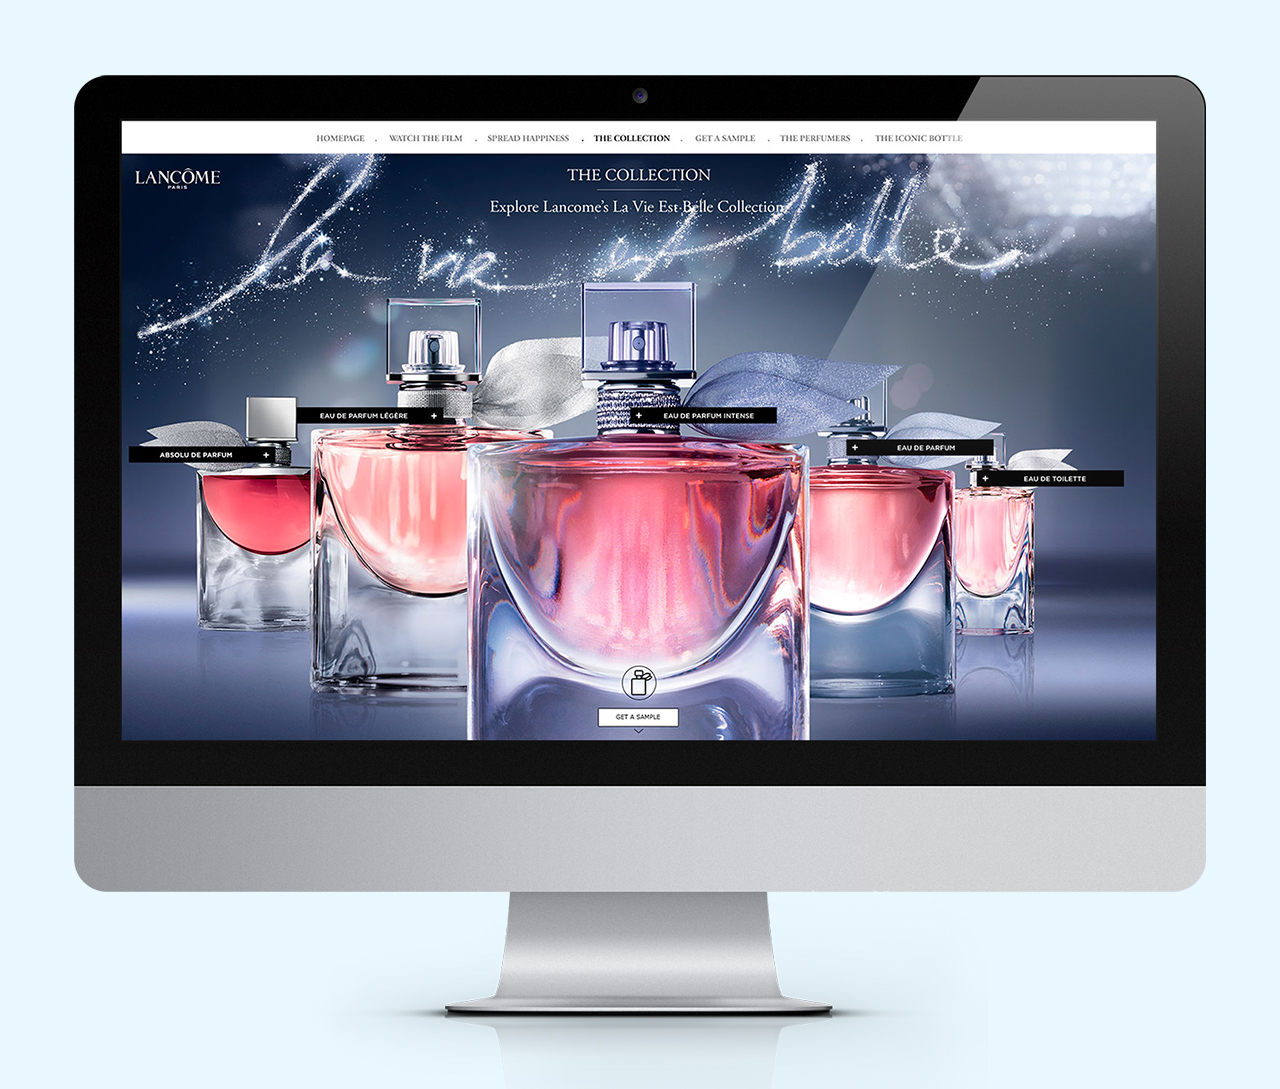 4-lancome-digital-website-interactive-inoui-studio-paris